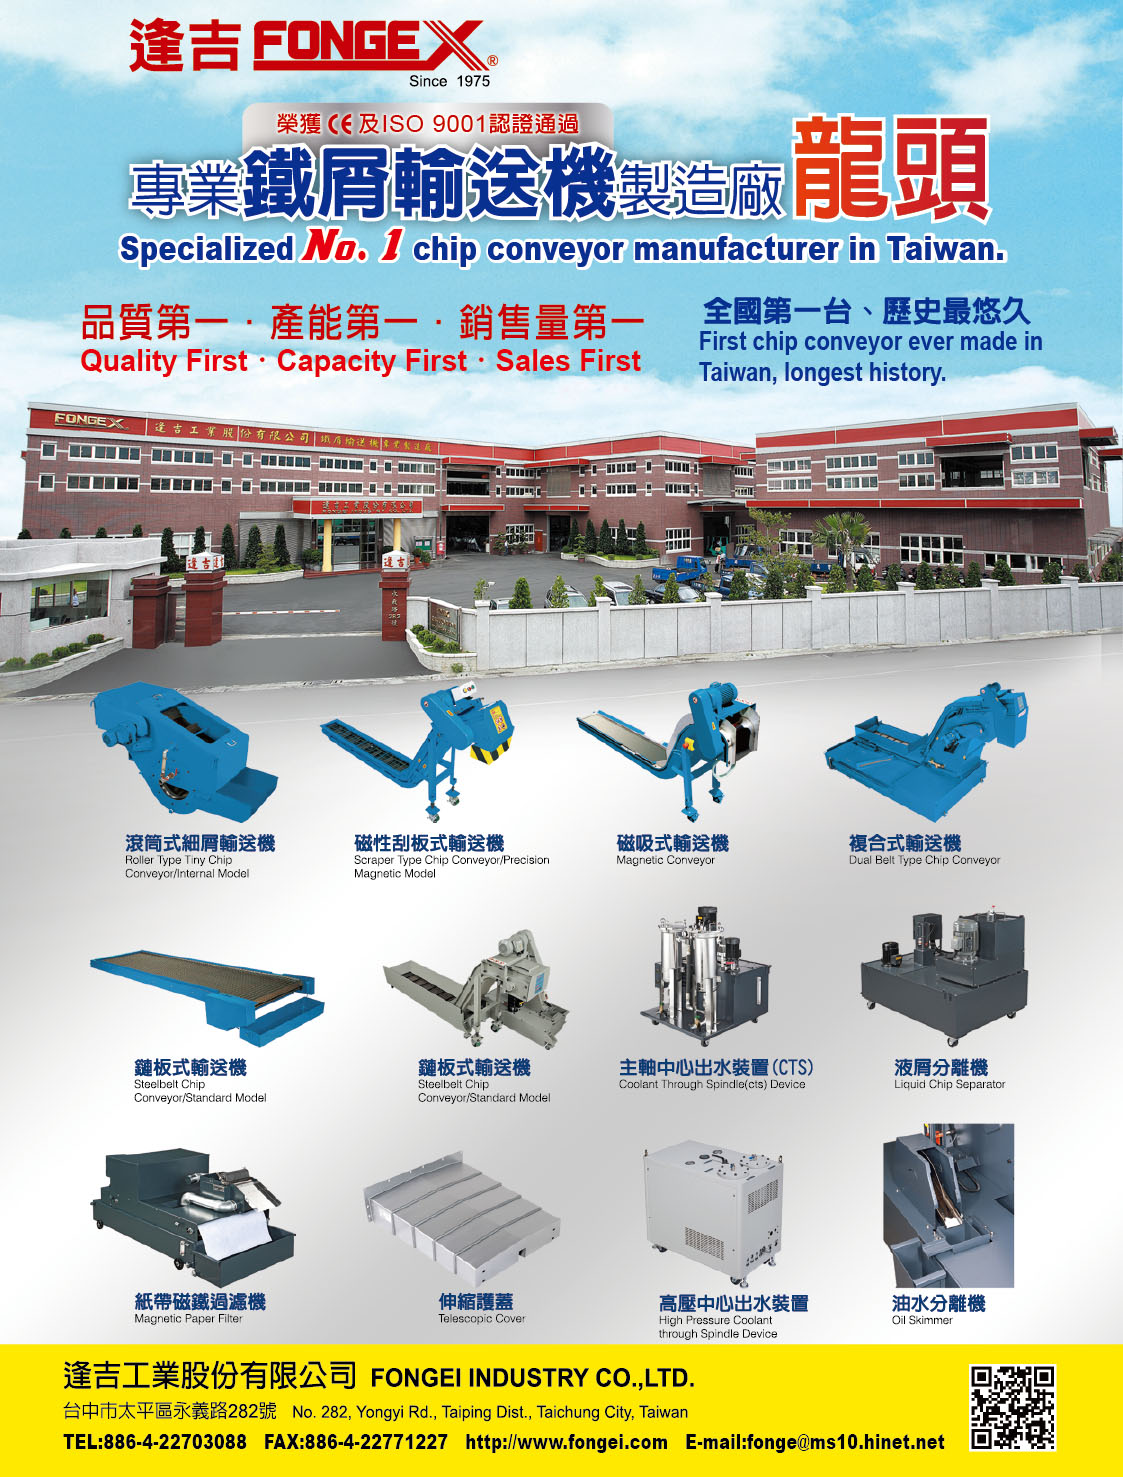 FONGEI INDUSTRY CO., LTD.